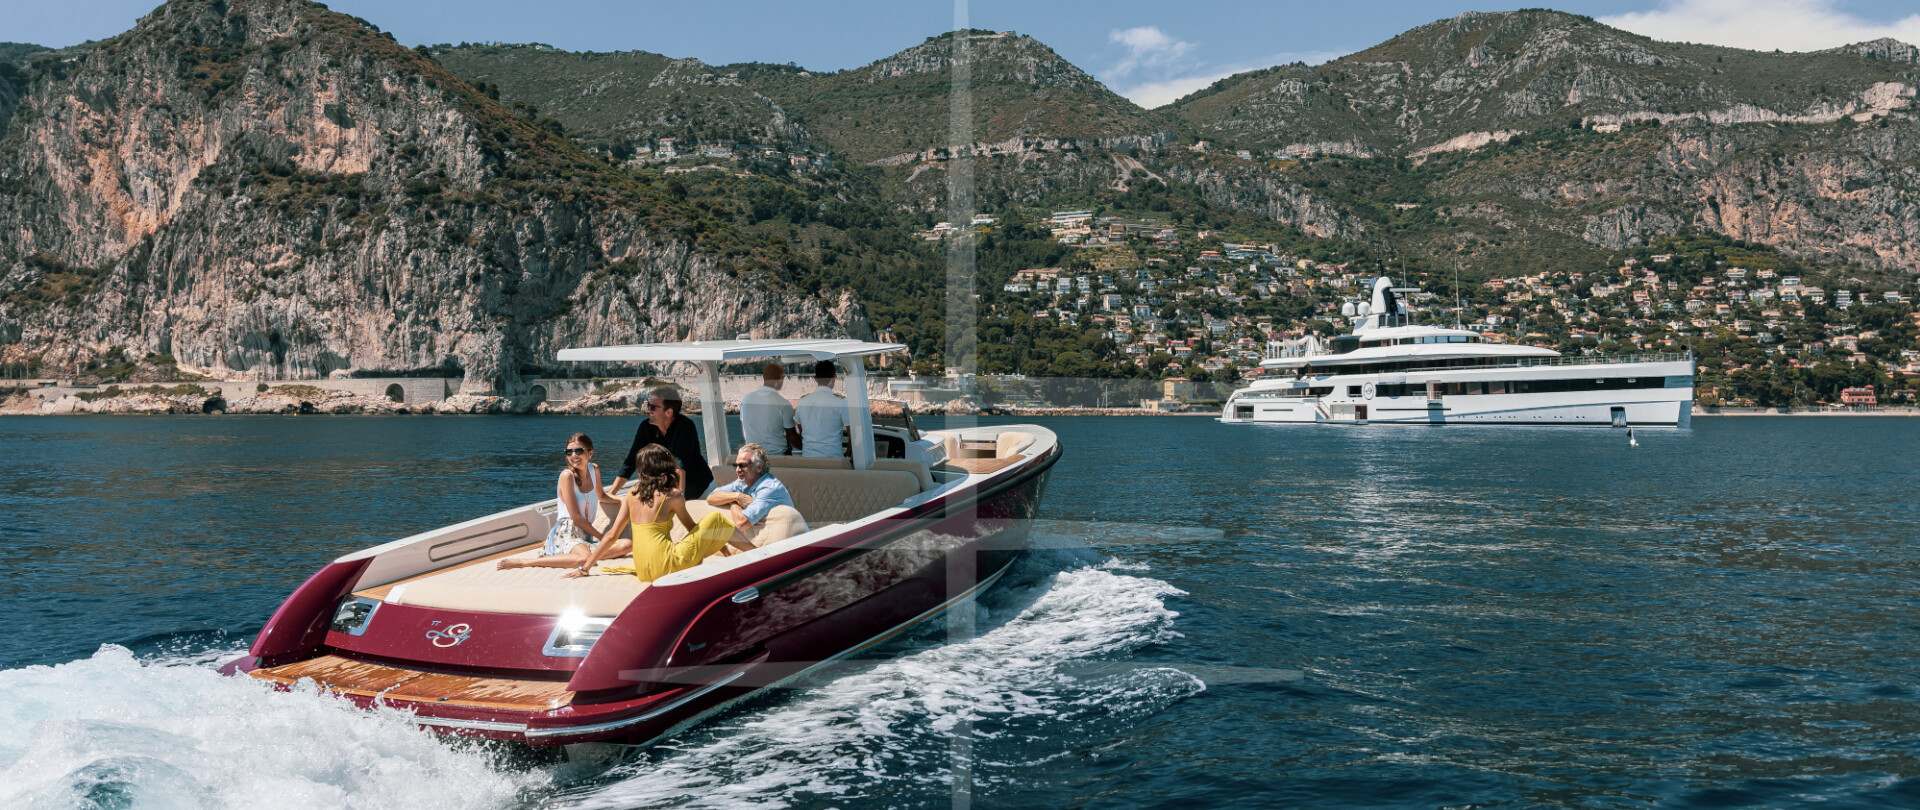 Why a Croatian charter should be on your bucket list for 2021 photo 1